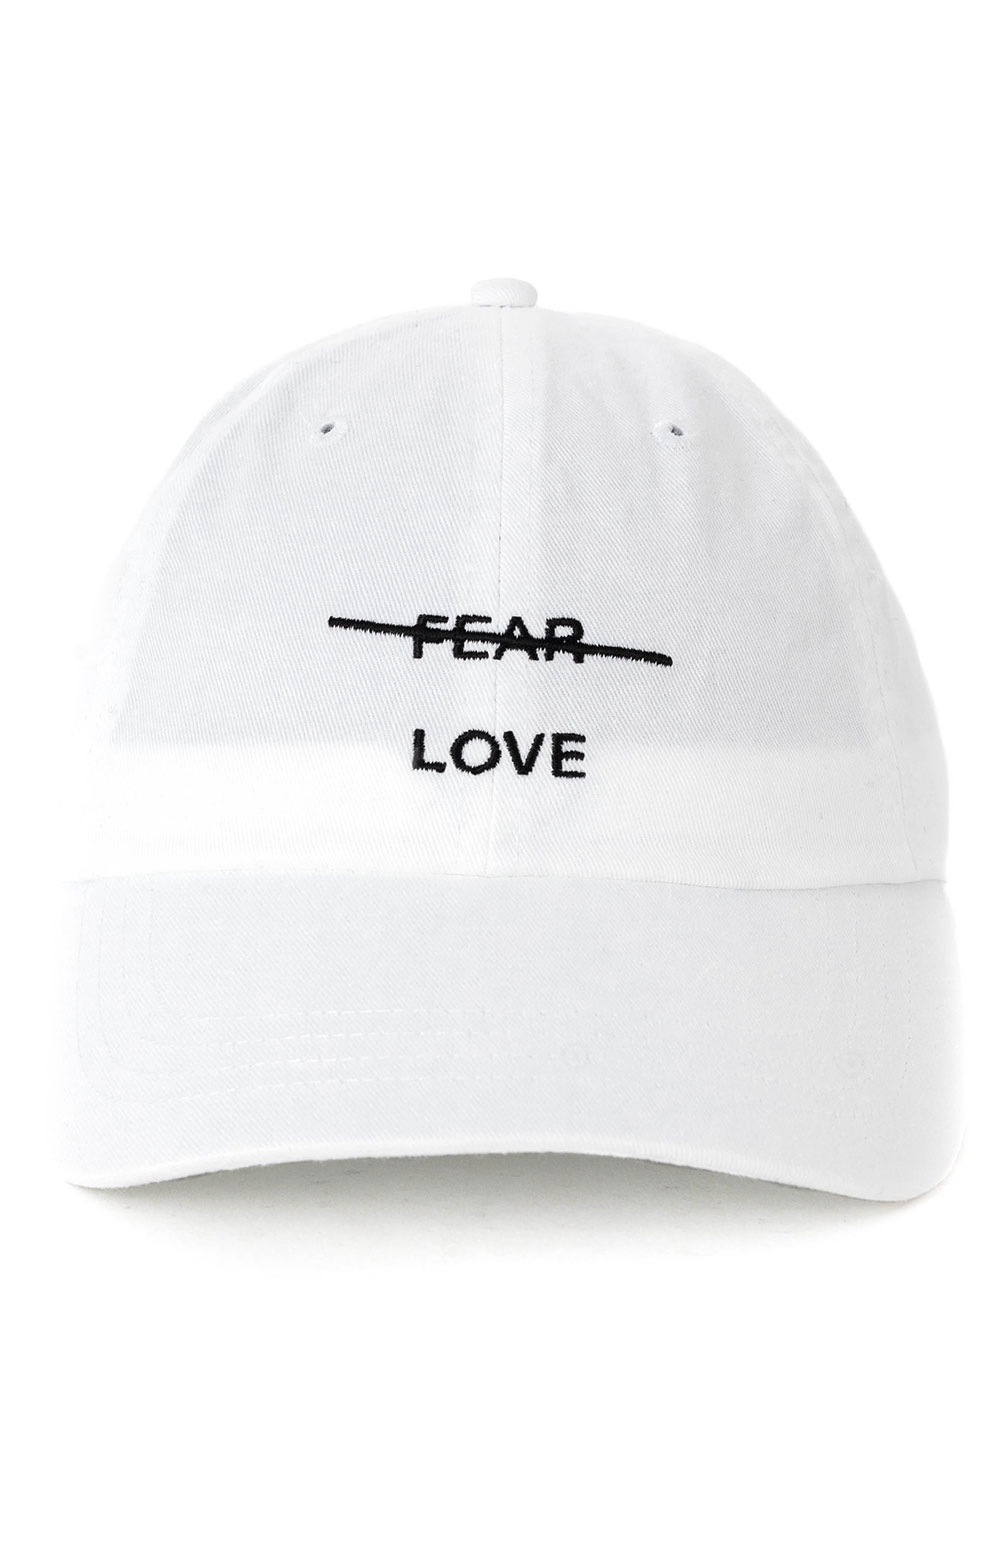 Love Over Fear Dad Hat - White  2